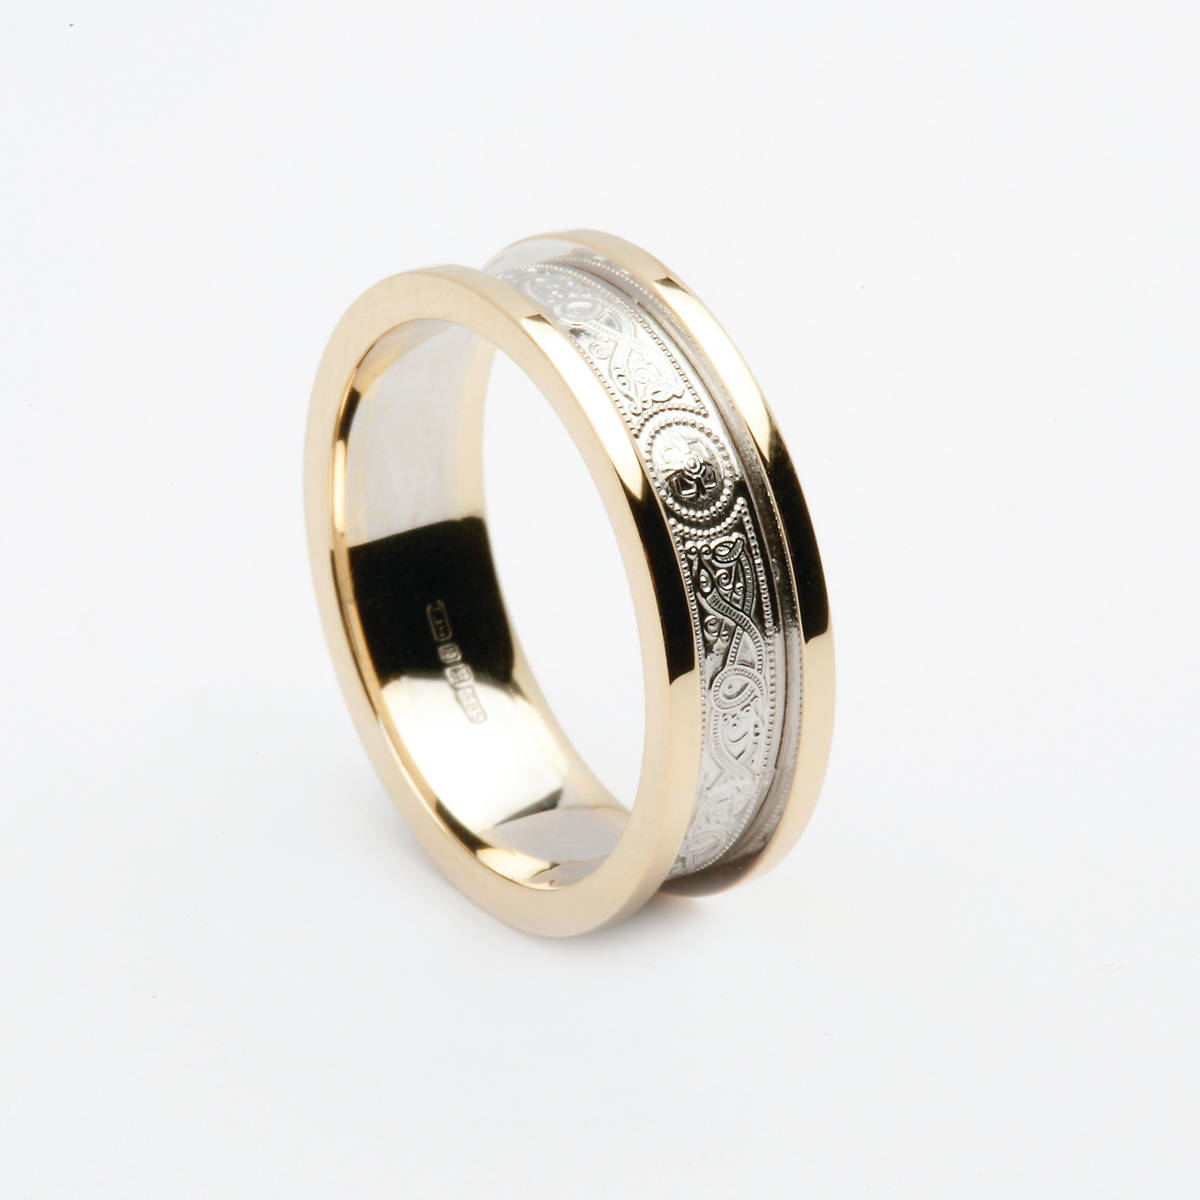 10 carat white gold Arda inspired unisex wedding ring with 10 carat yellow gold heavy rims5.7mm